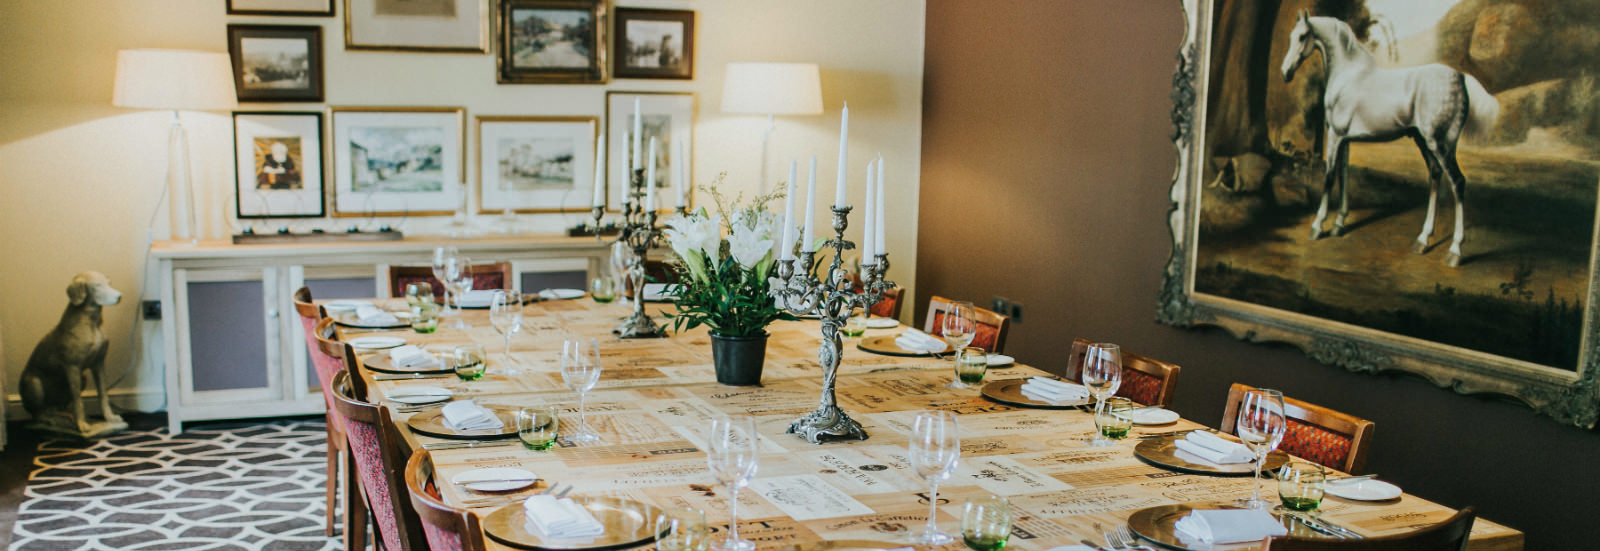 Host your special event at Raithwaite Estate